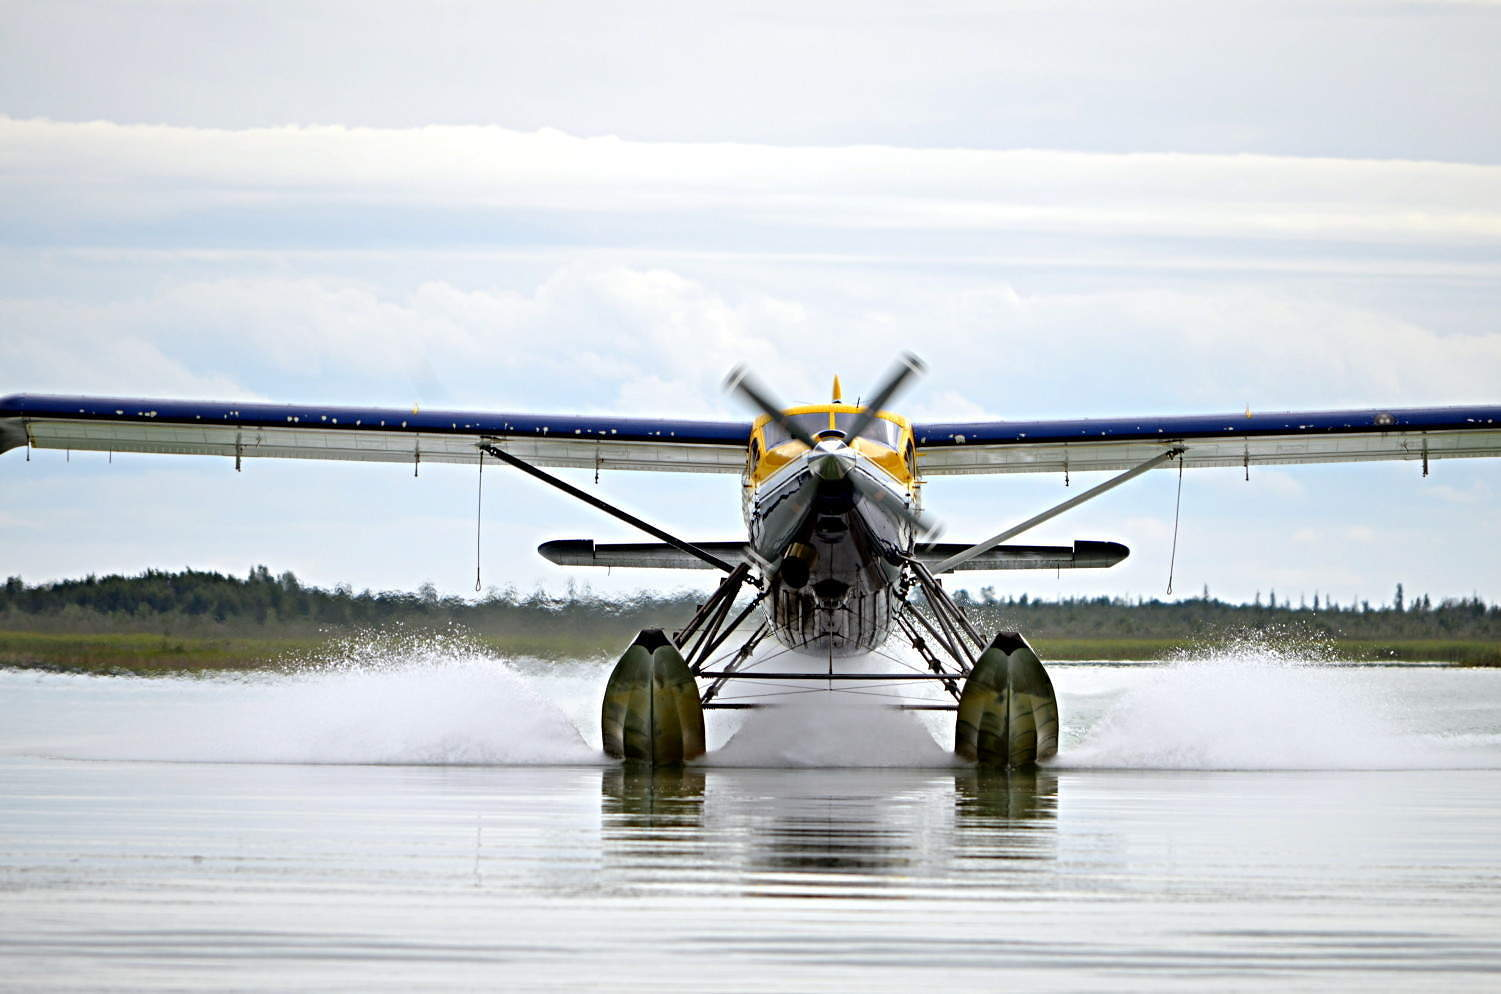 Alaskan Adventures, like sightseeing an a float plane, are perfect for your Kenai River Lodge adventures